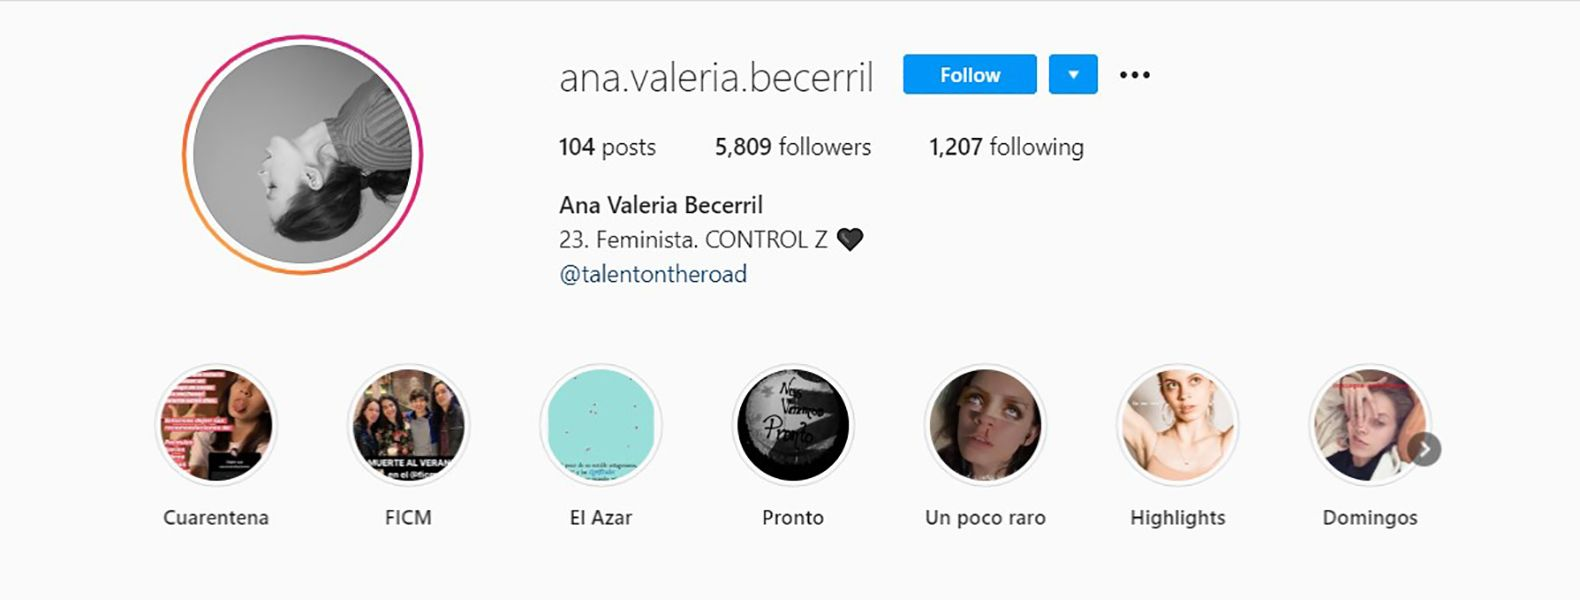 Instagram Bio of Ana Valeria Becerril Describing Herself as a Feminist